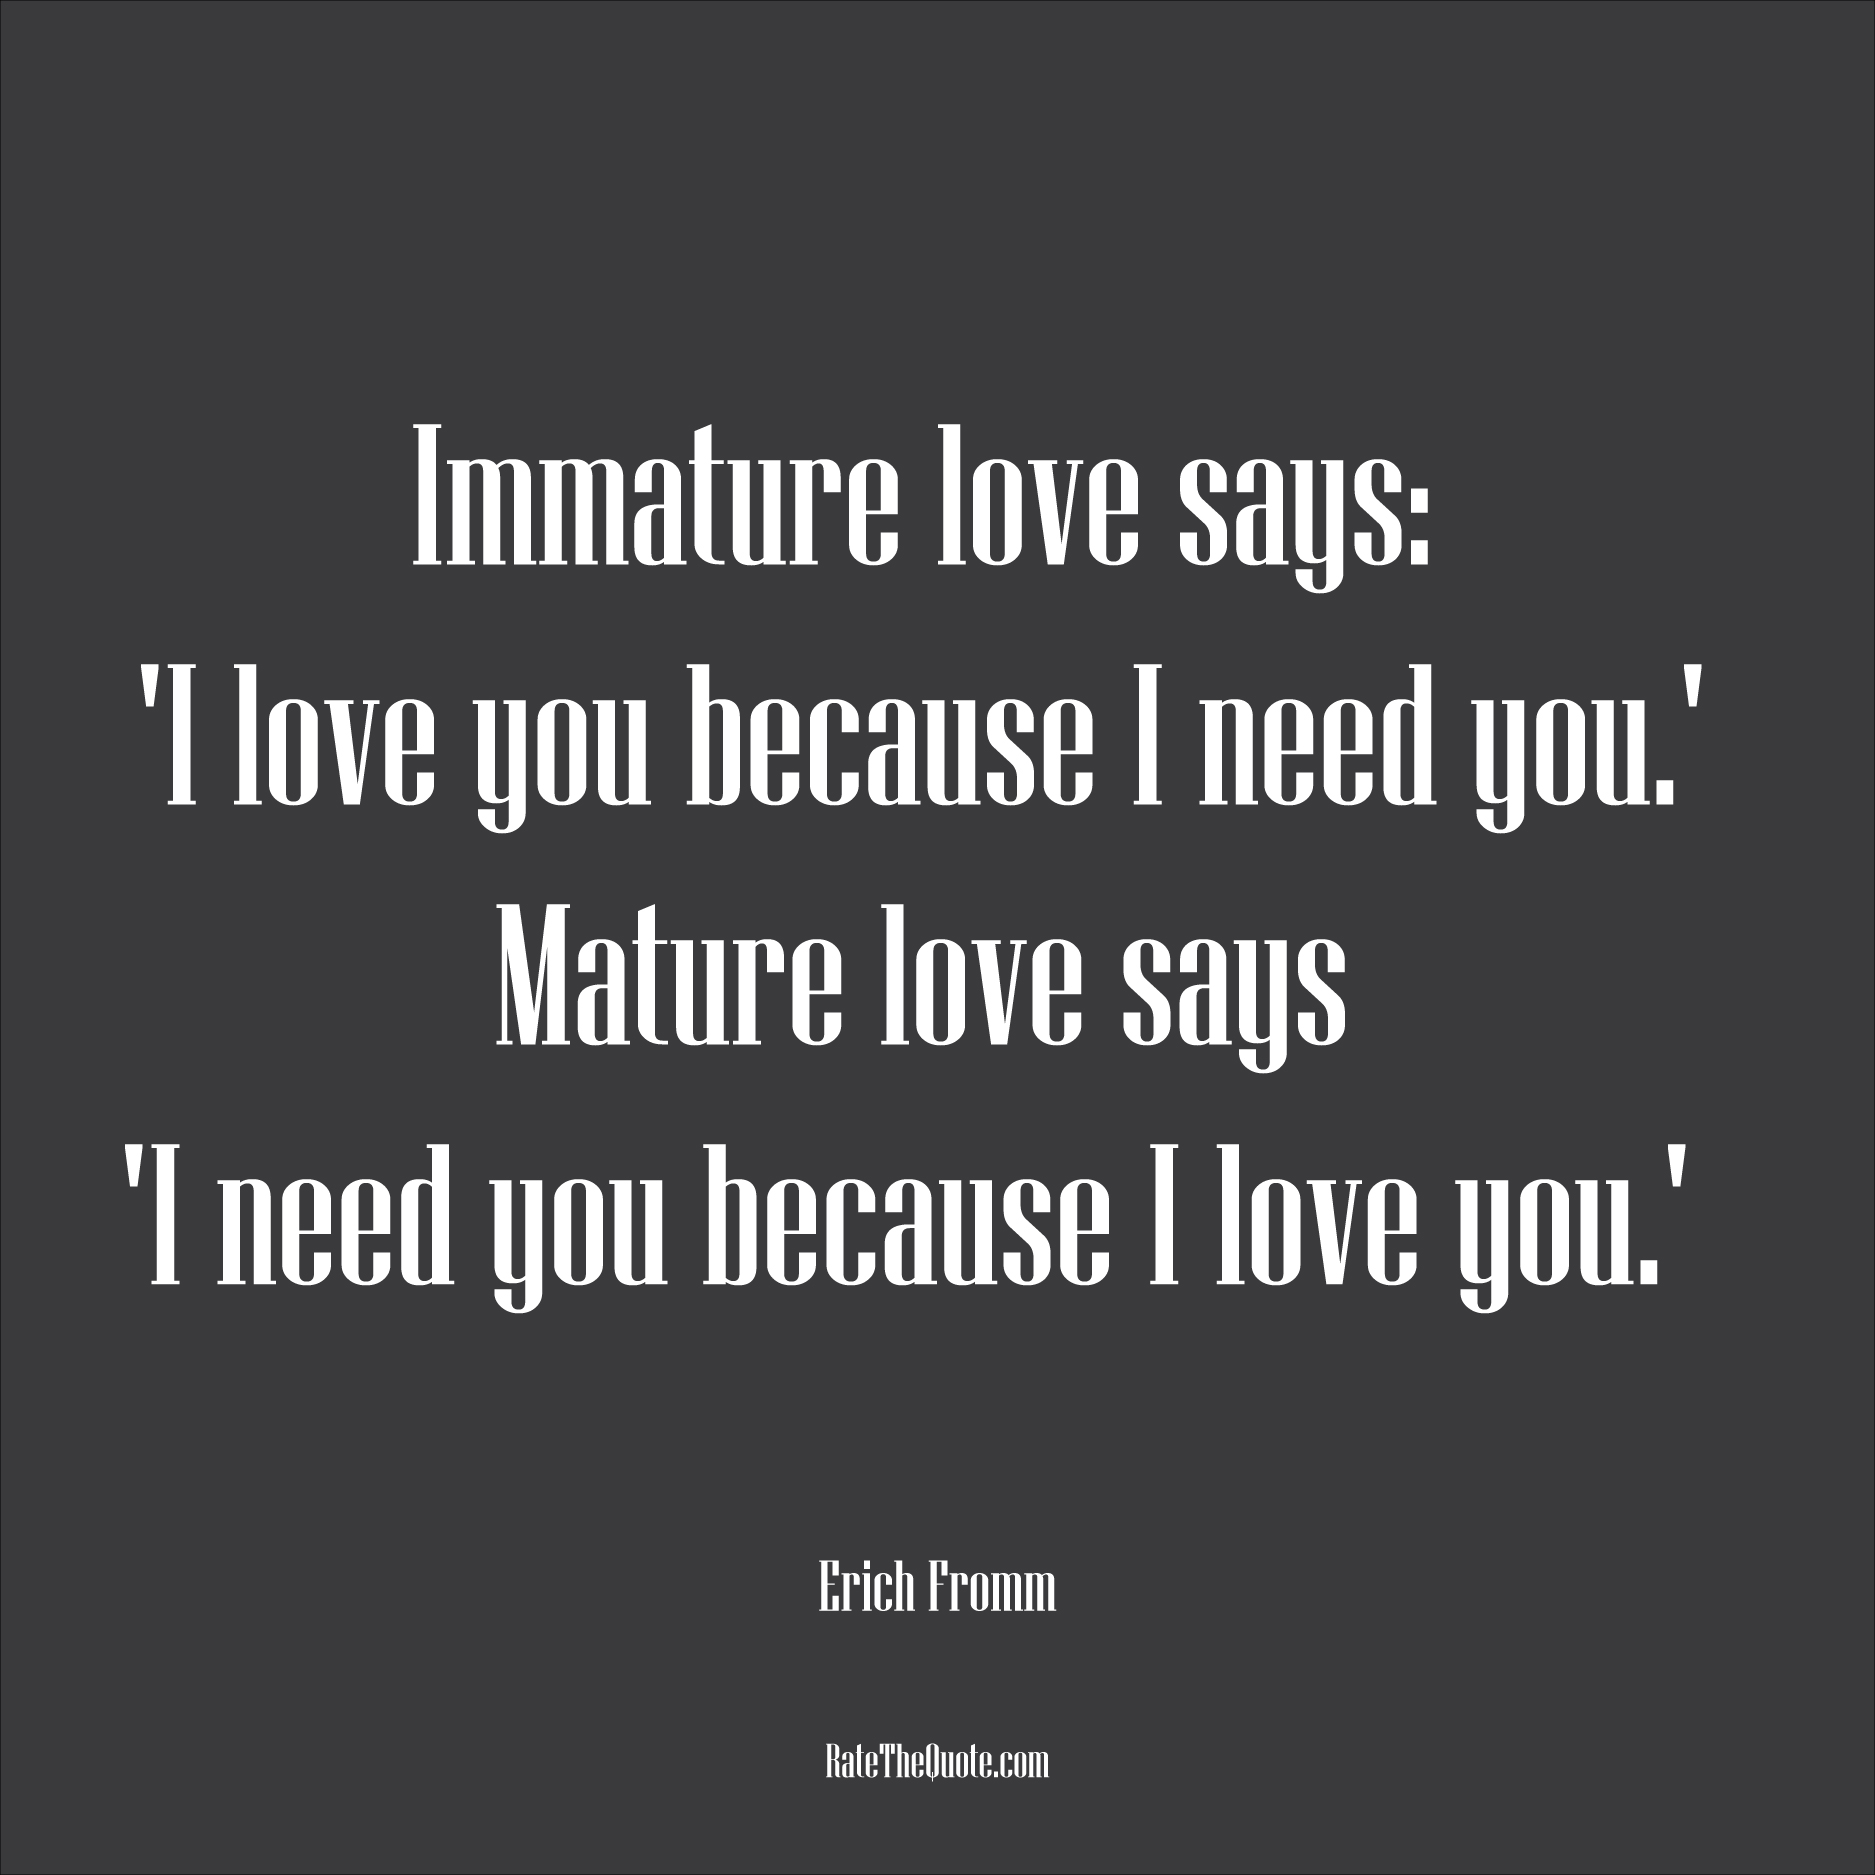 Love Quotes Immature love says: 'I love you because I need you.' Mature love says 'I need you because I love you.' Erich Fromm